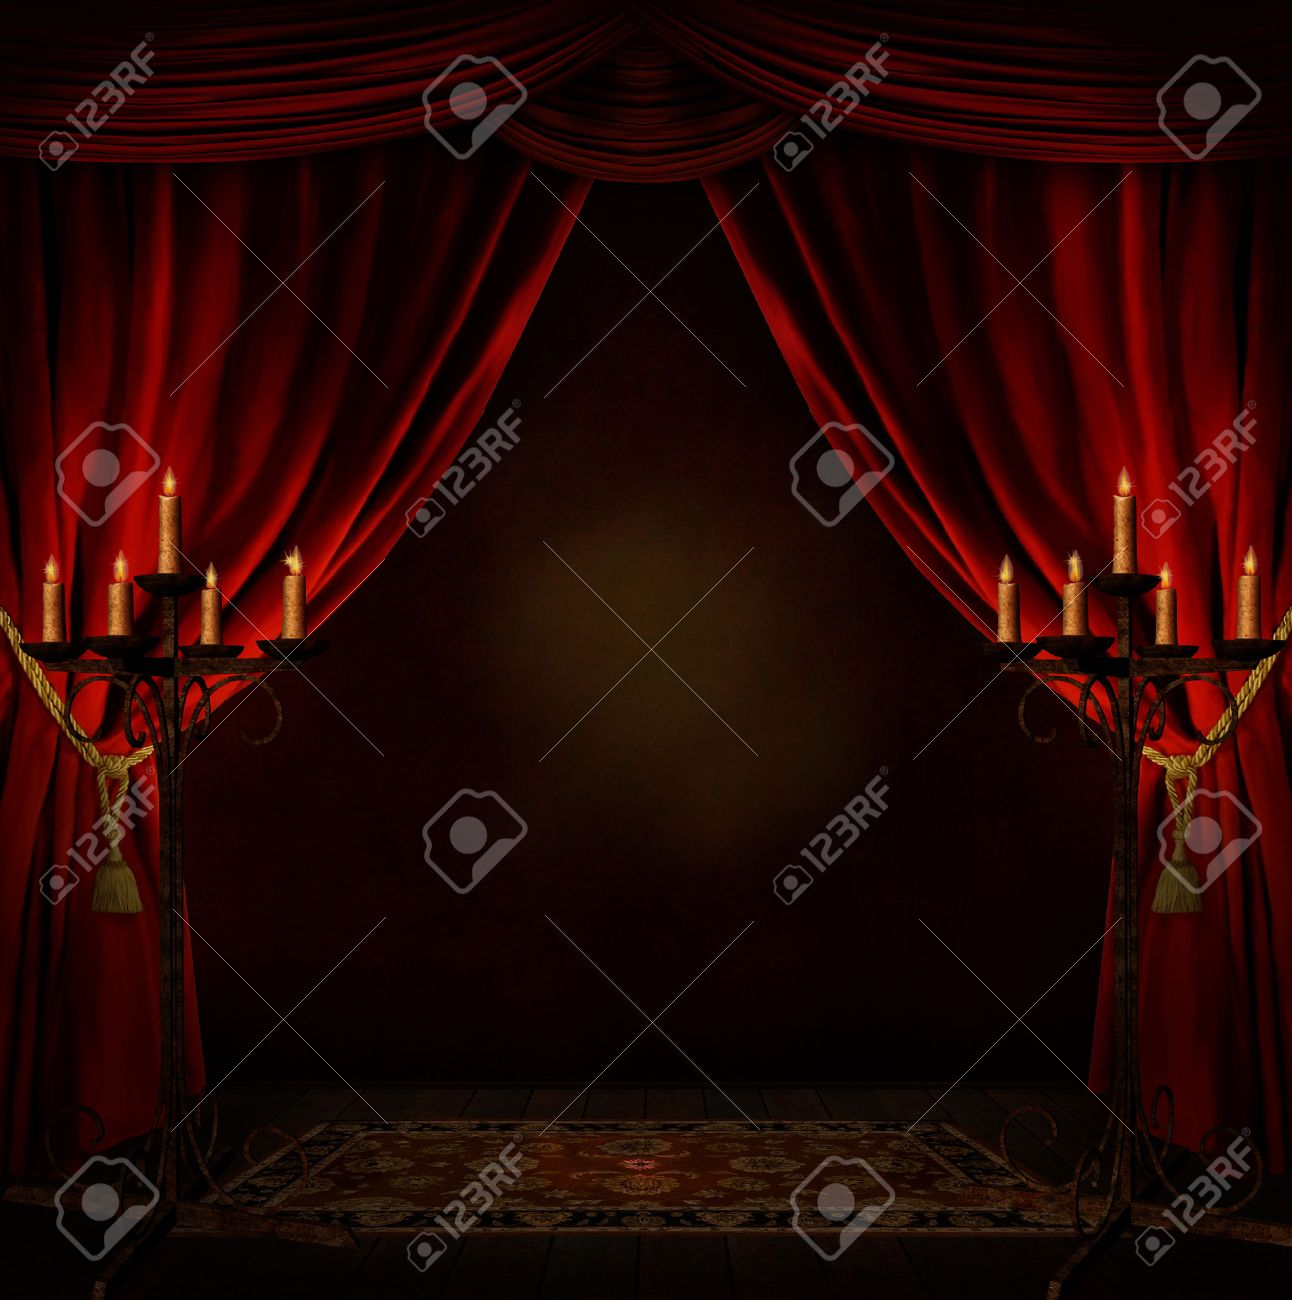 creepy room with red courtains and candles - 27613775